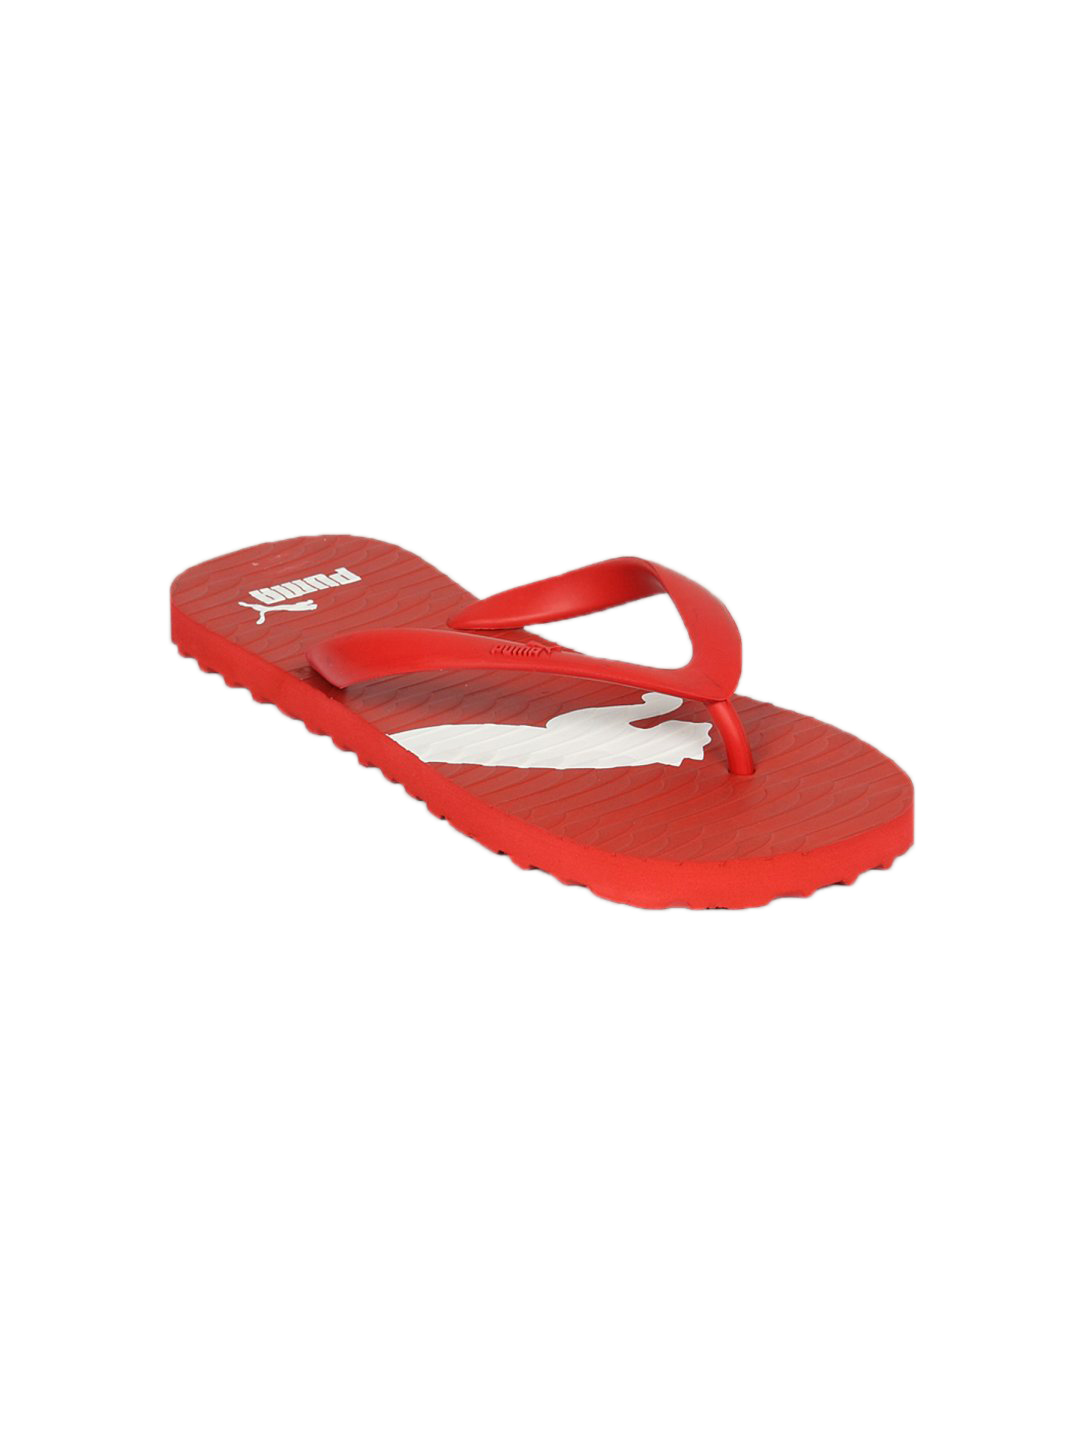 Puma Unisex Arizona Red Flip Flop